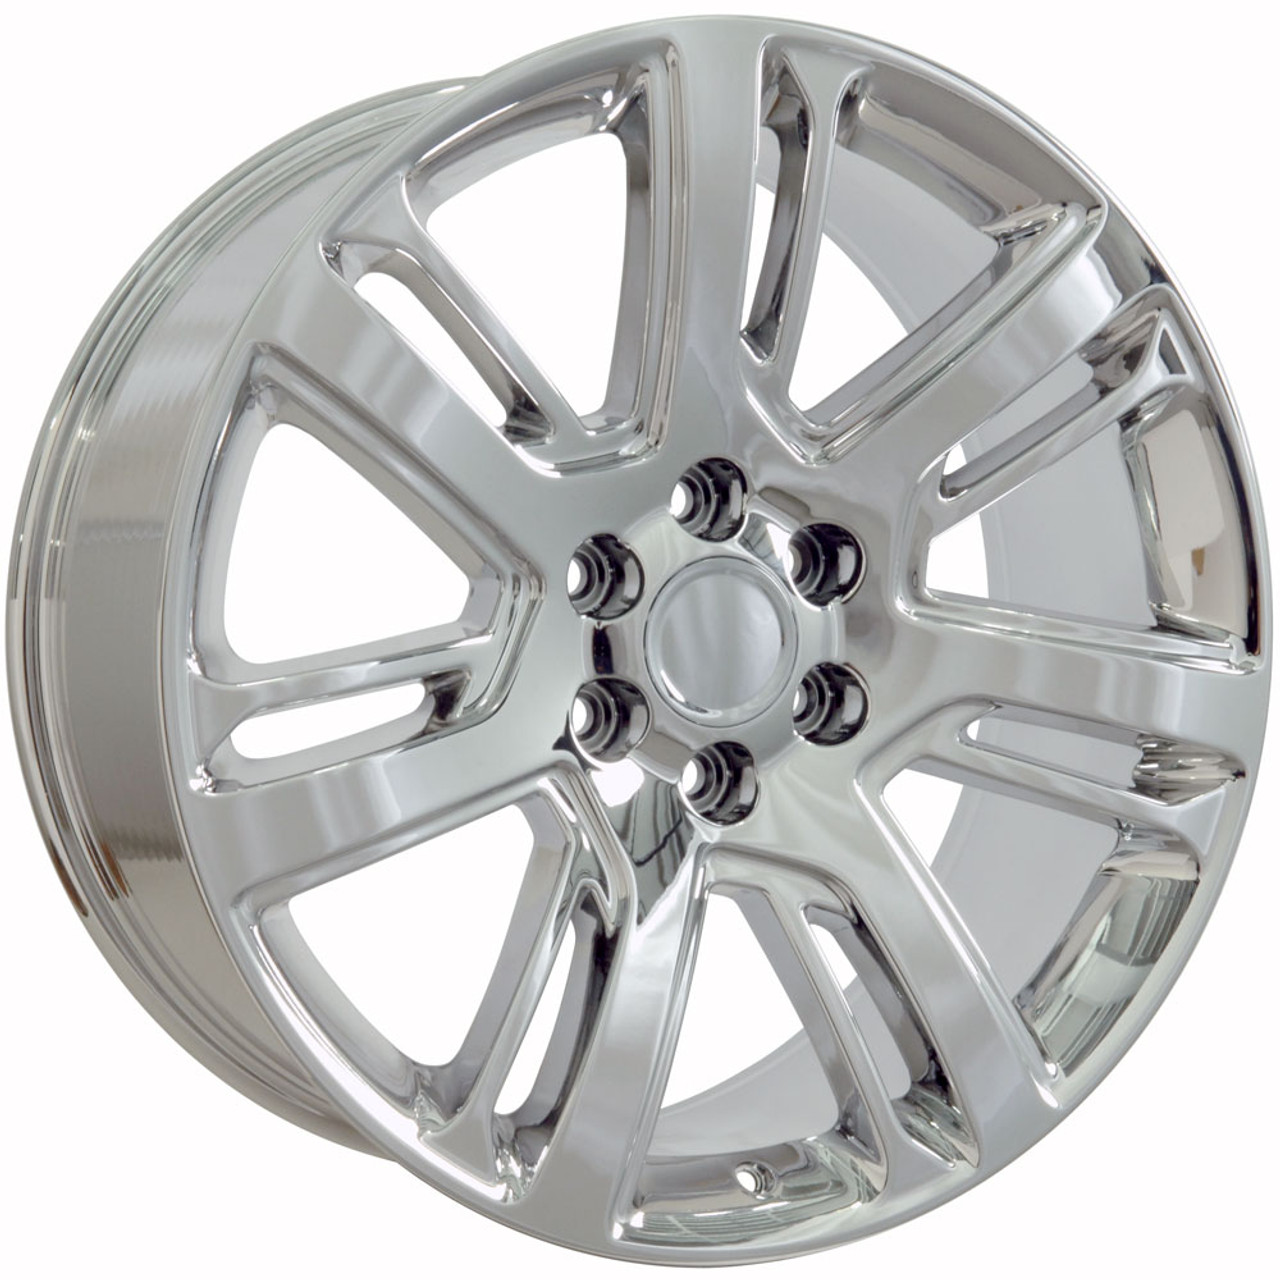 dub wheels on tire cts and machined rim black dublaceblkmachcts rims lace models cadillac packages custom